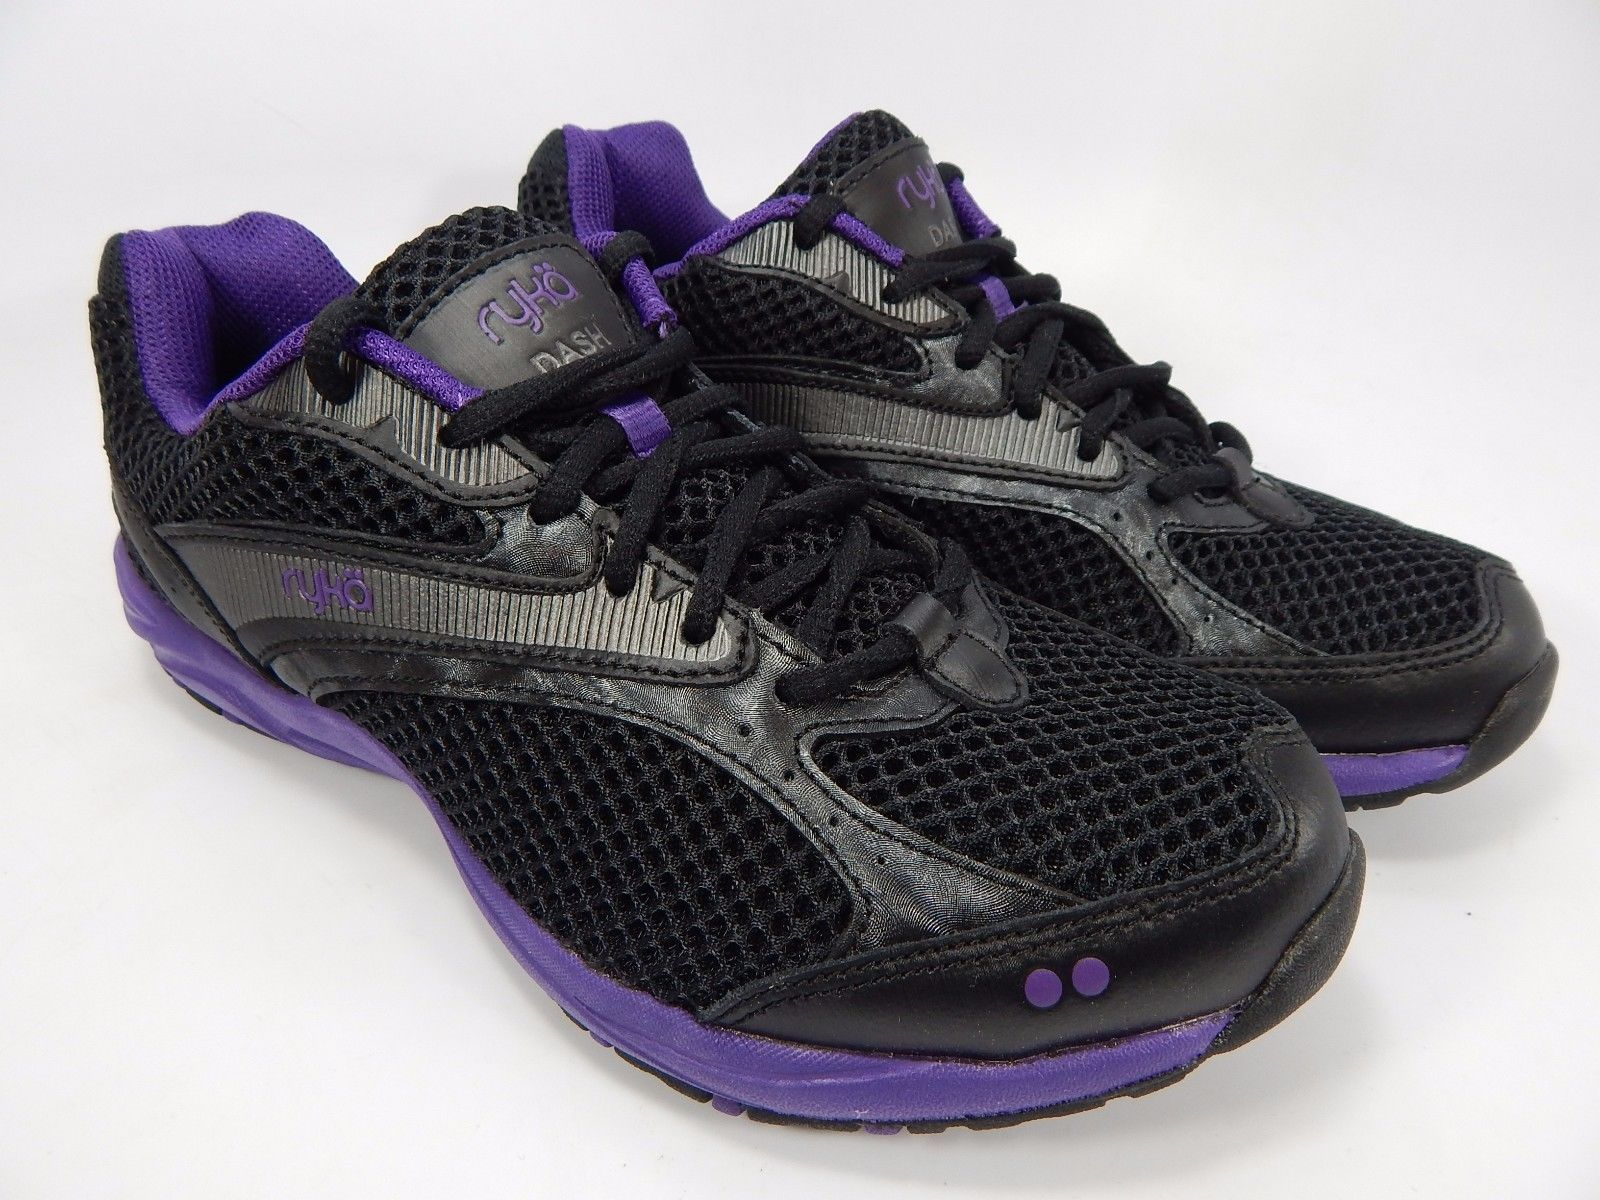 Ryka Dash Women's Running Shoes Size US 5 M (B) EU 35 Black Purple